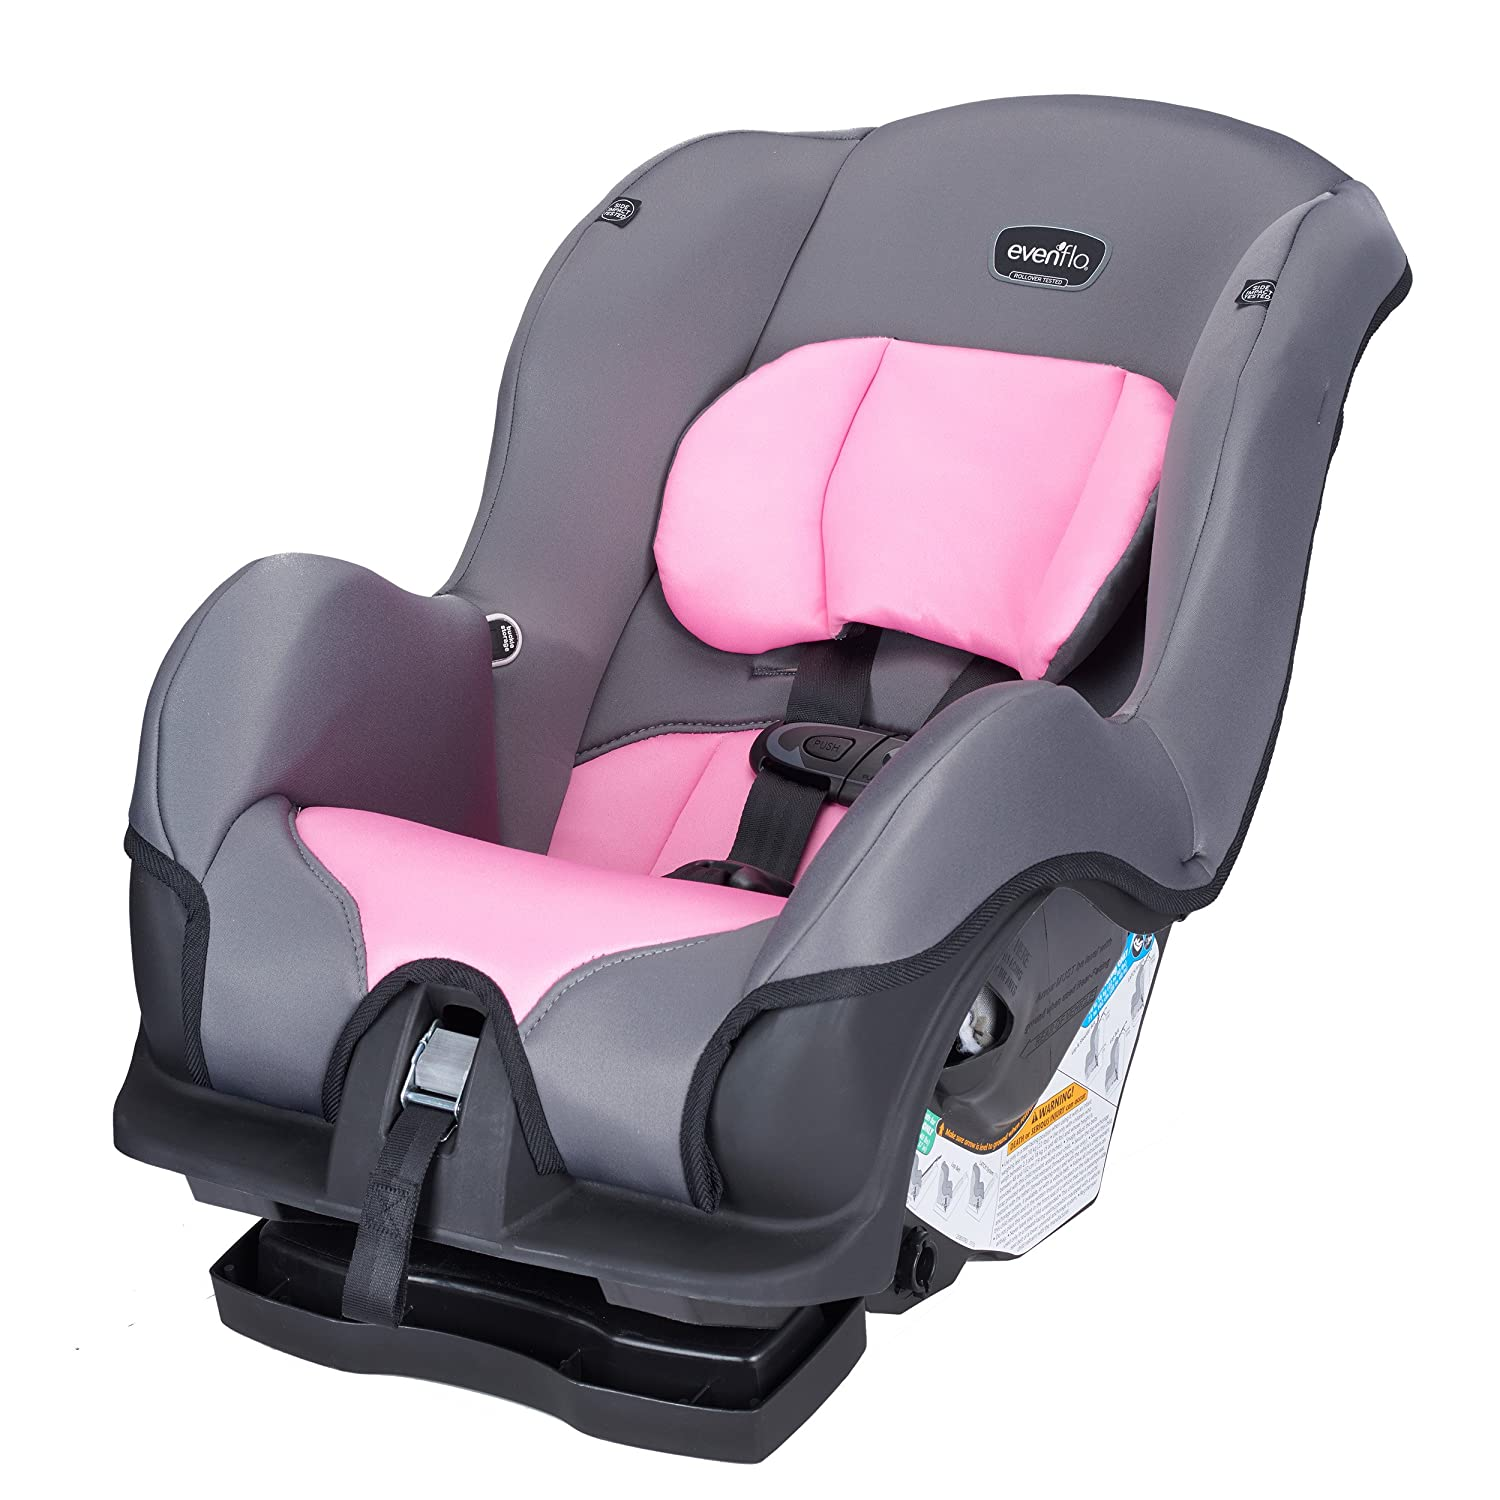 Evenflo Tribute Lx Convertible Car Seat Abigail Evnf9 38111010